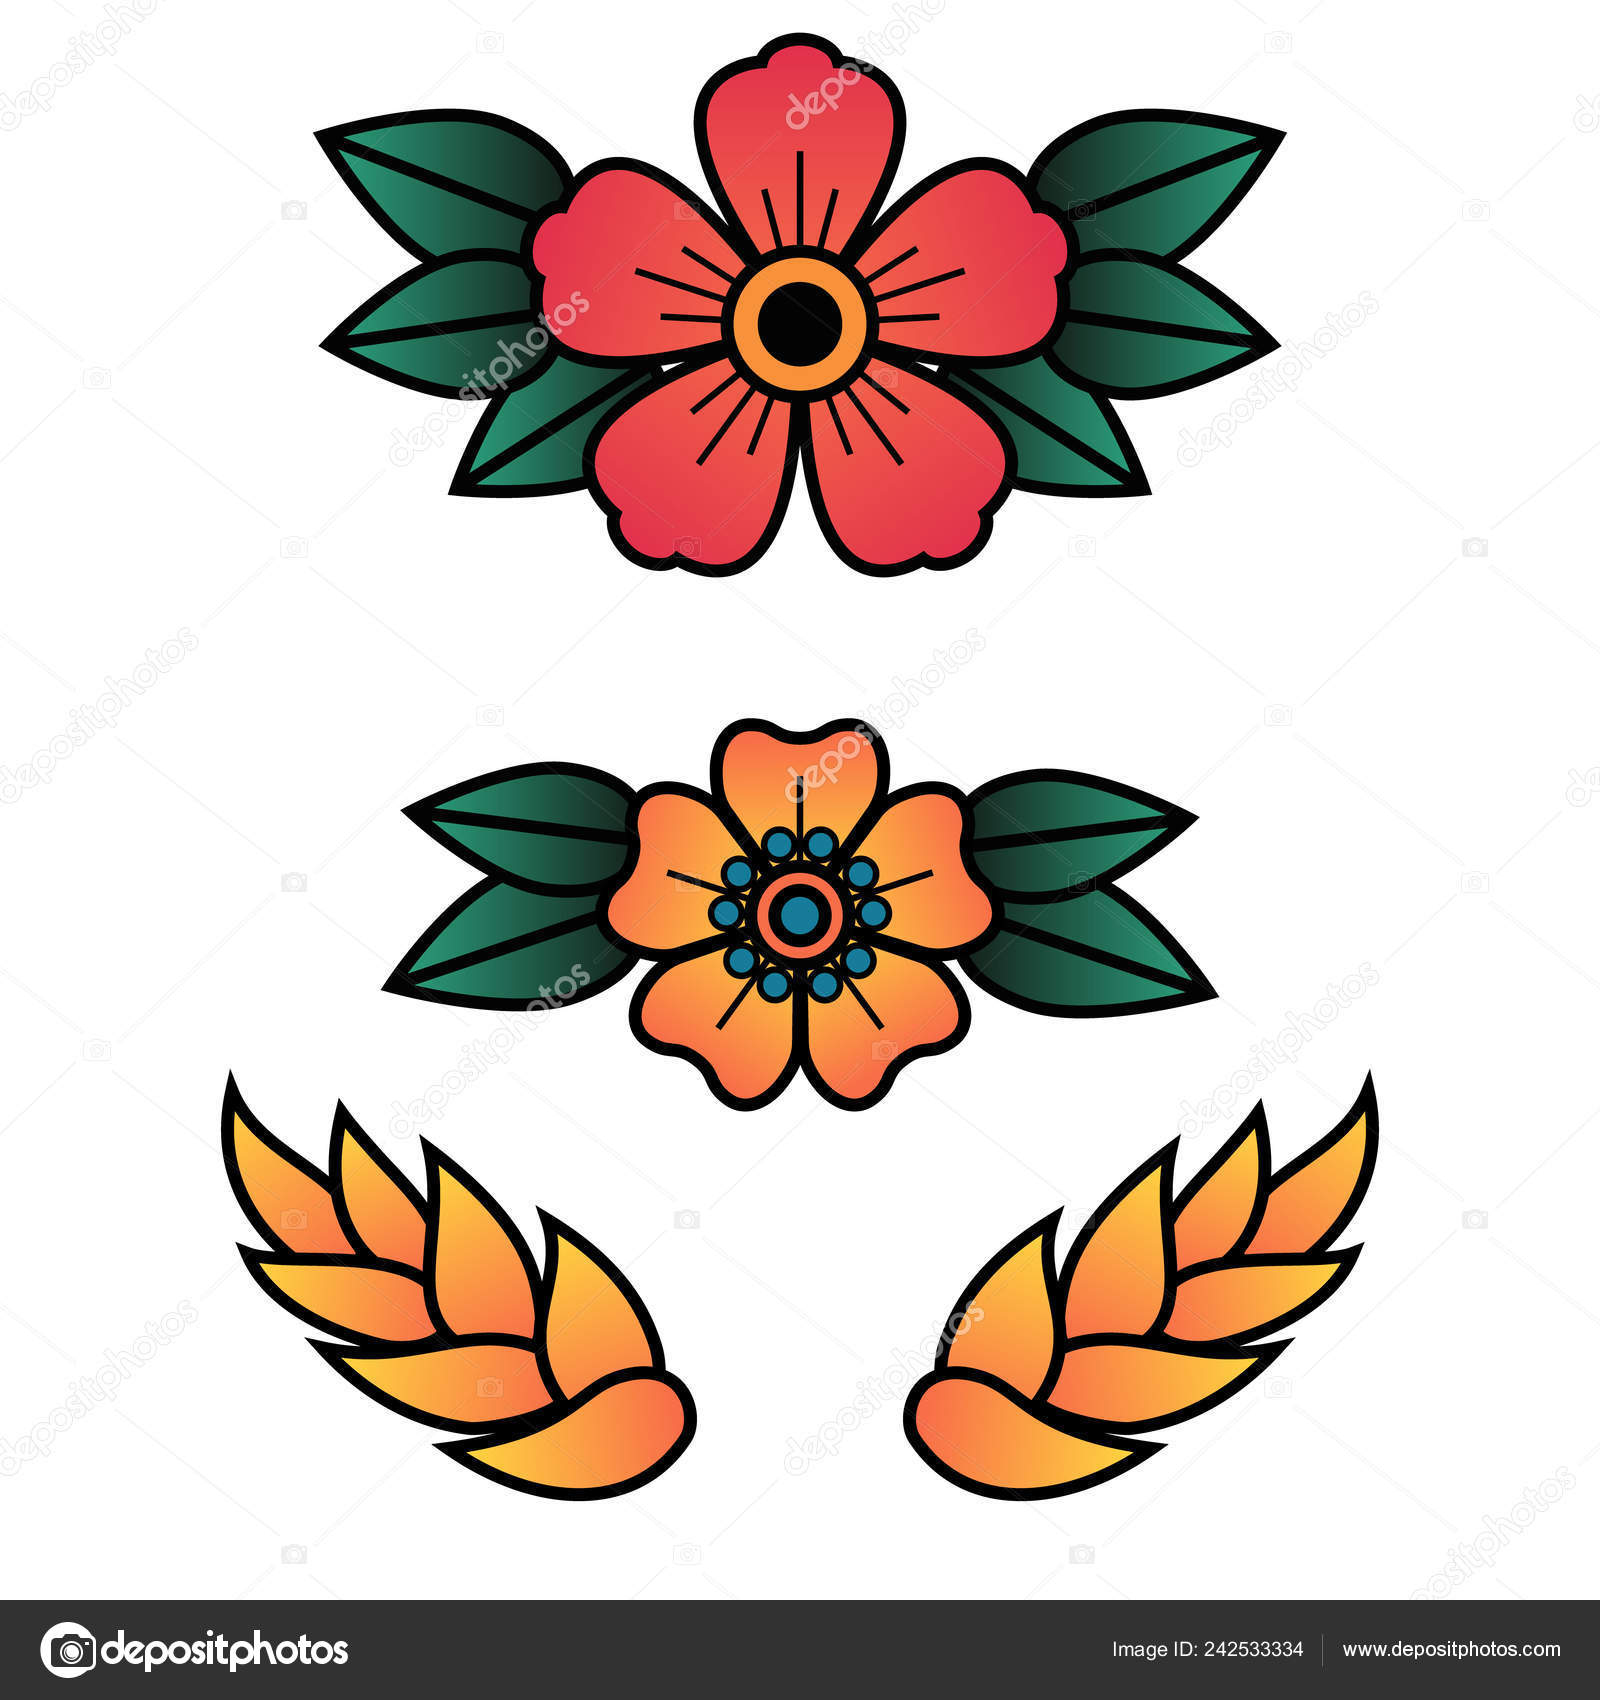 Oldschool Traditional Tattoo Vector Flowers with 5 Petals — Stock Vector